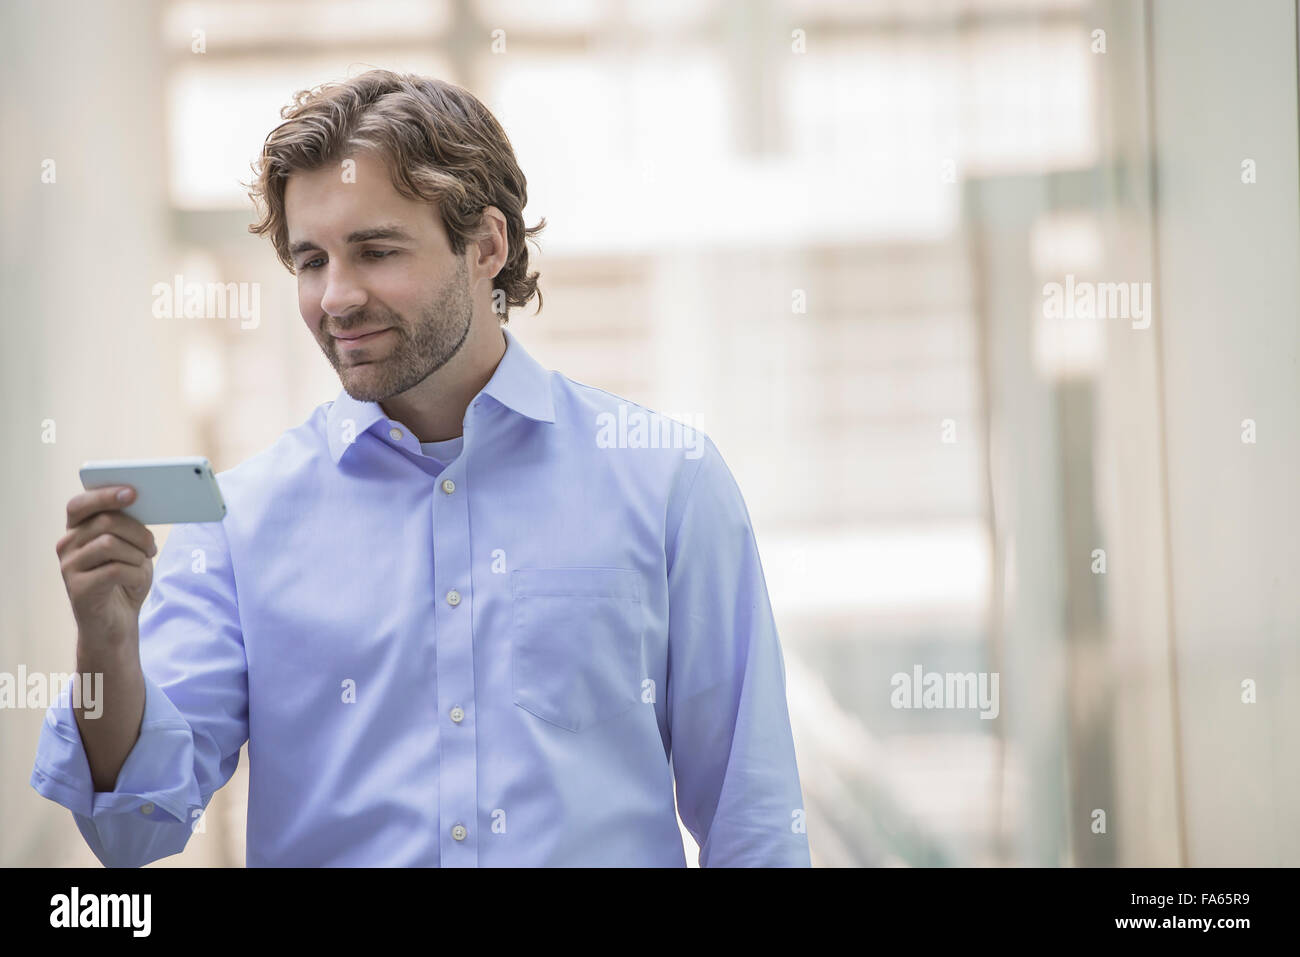 A man in shirt and tie using a smart phone in an urban scene. Stock Photo